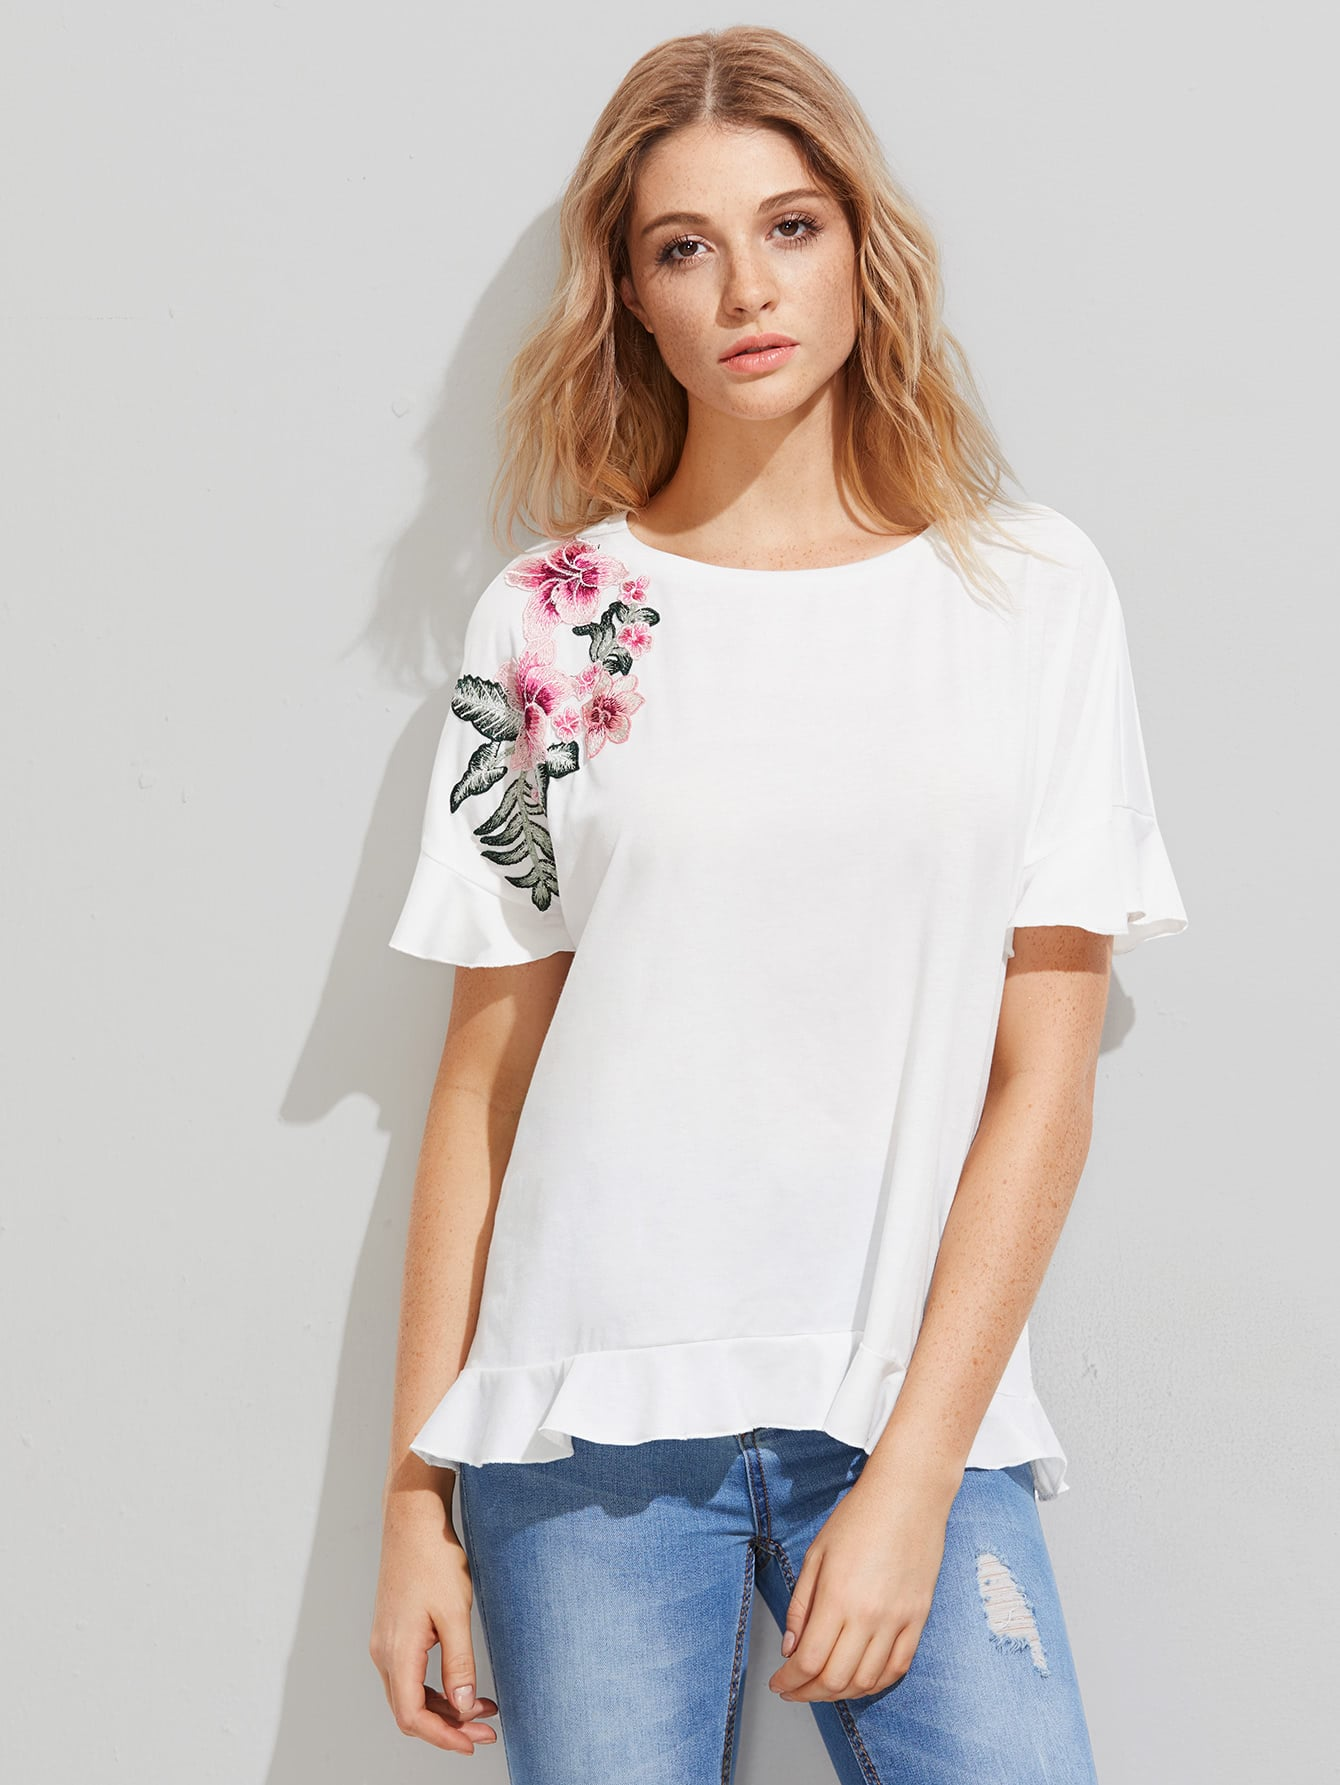 Embroidered Flower Patch Frill Trim Tee frill trim tee